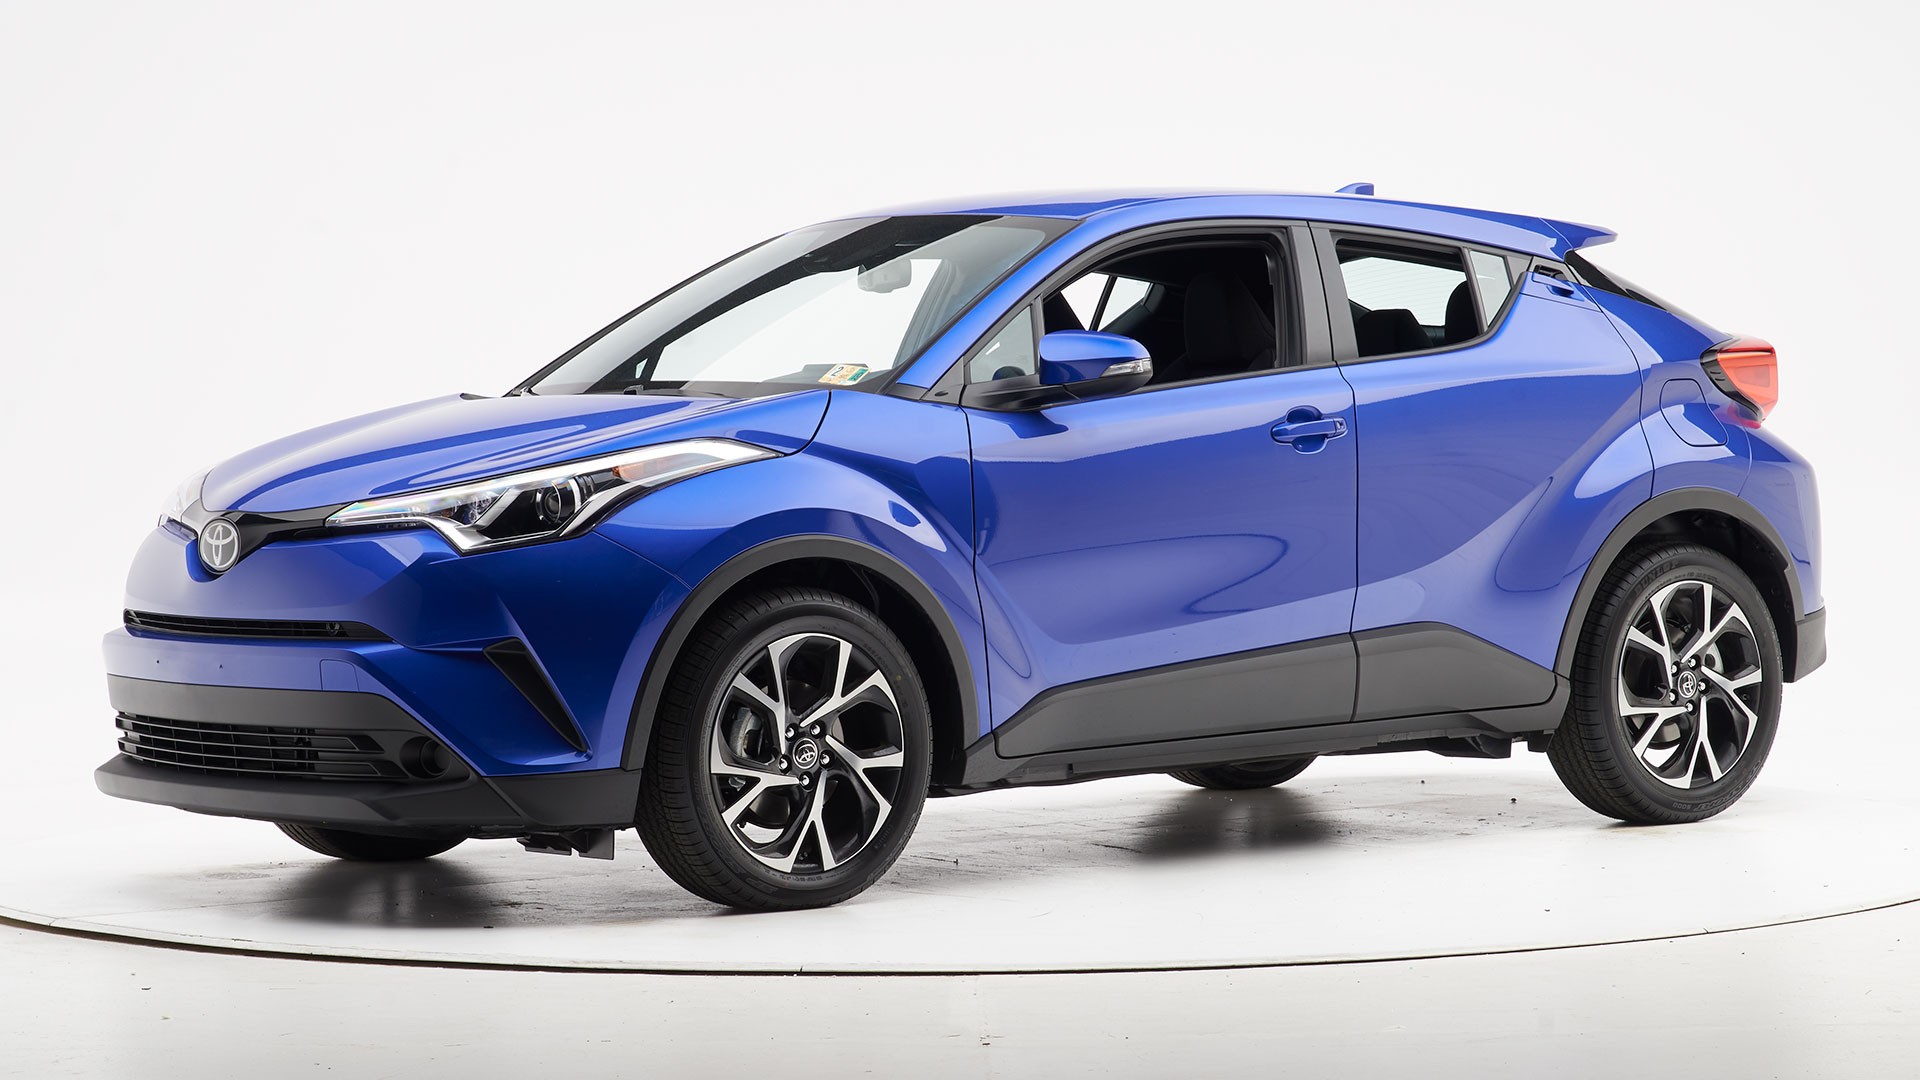 2020 Toyota C-HR 4-door SUV